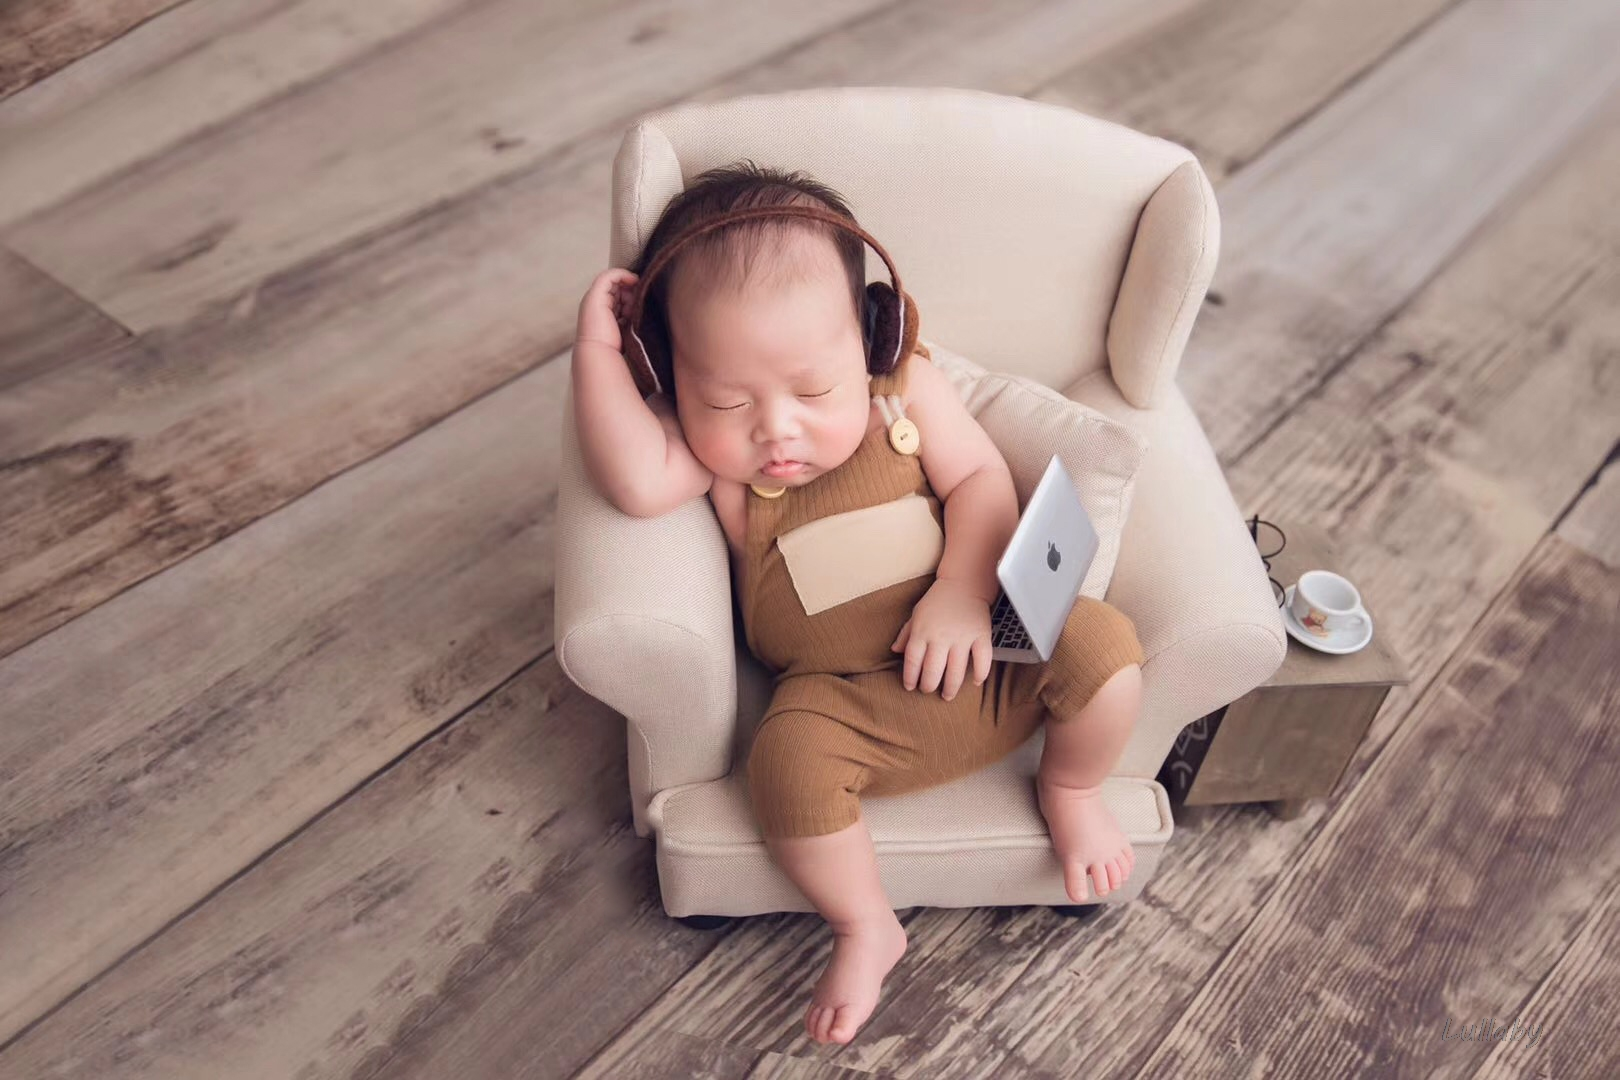 baby  props mini notebook small computer headset newborn baby creative photo props studio shooting accessories